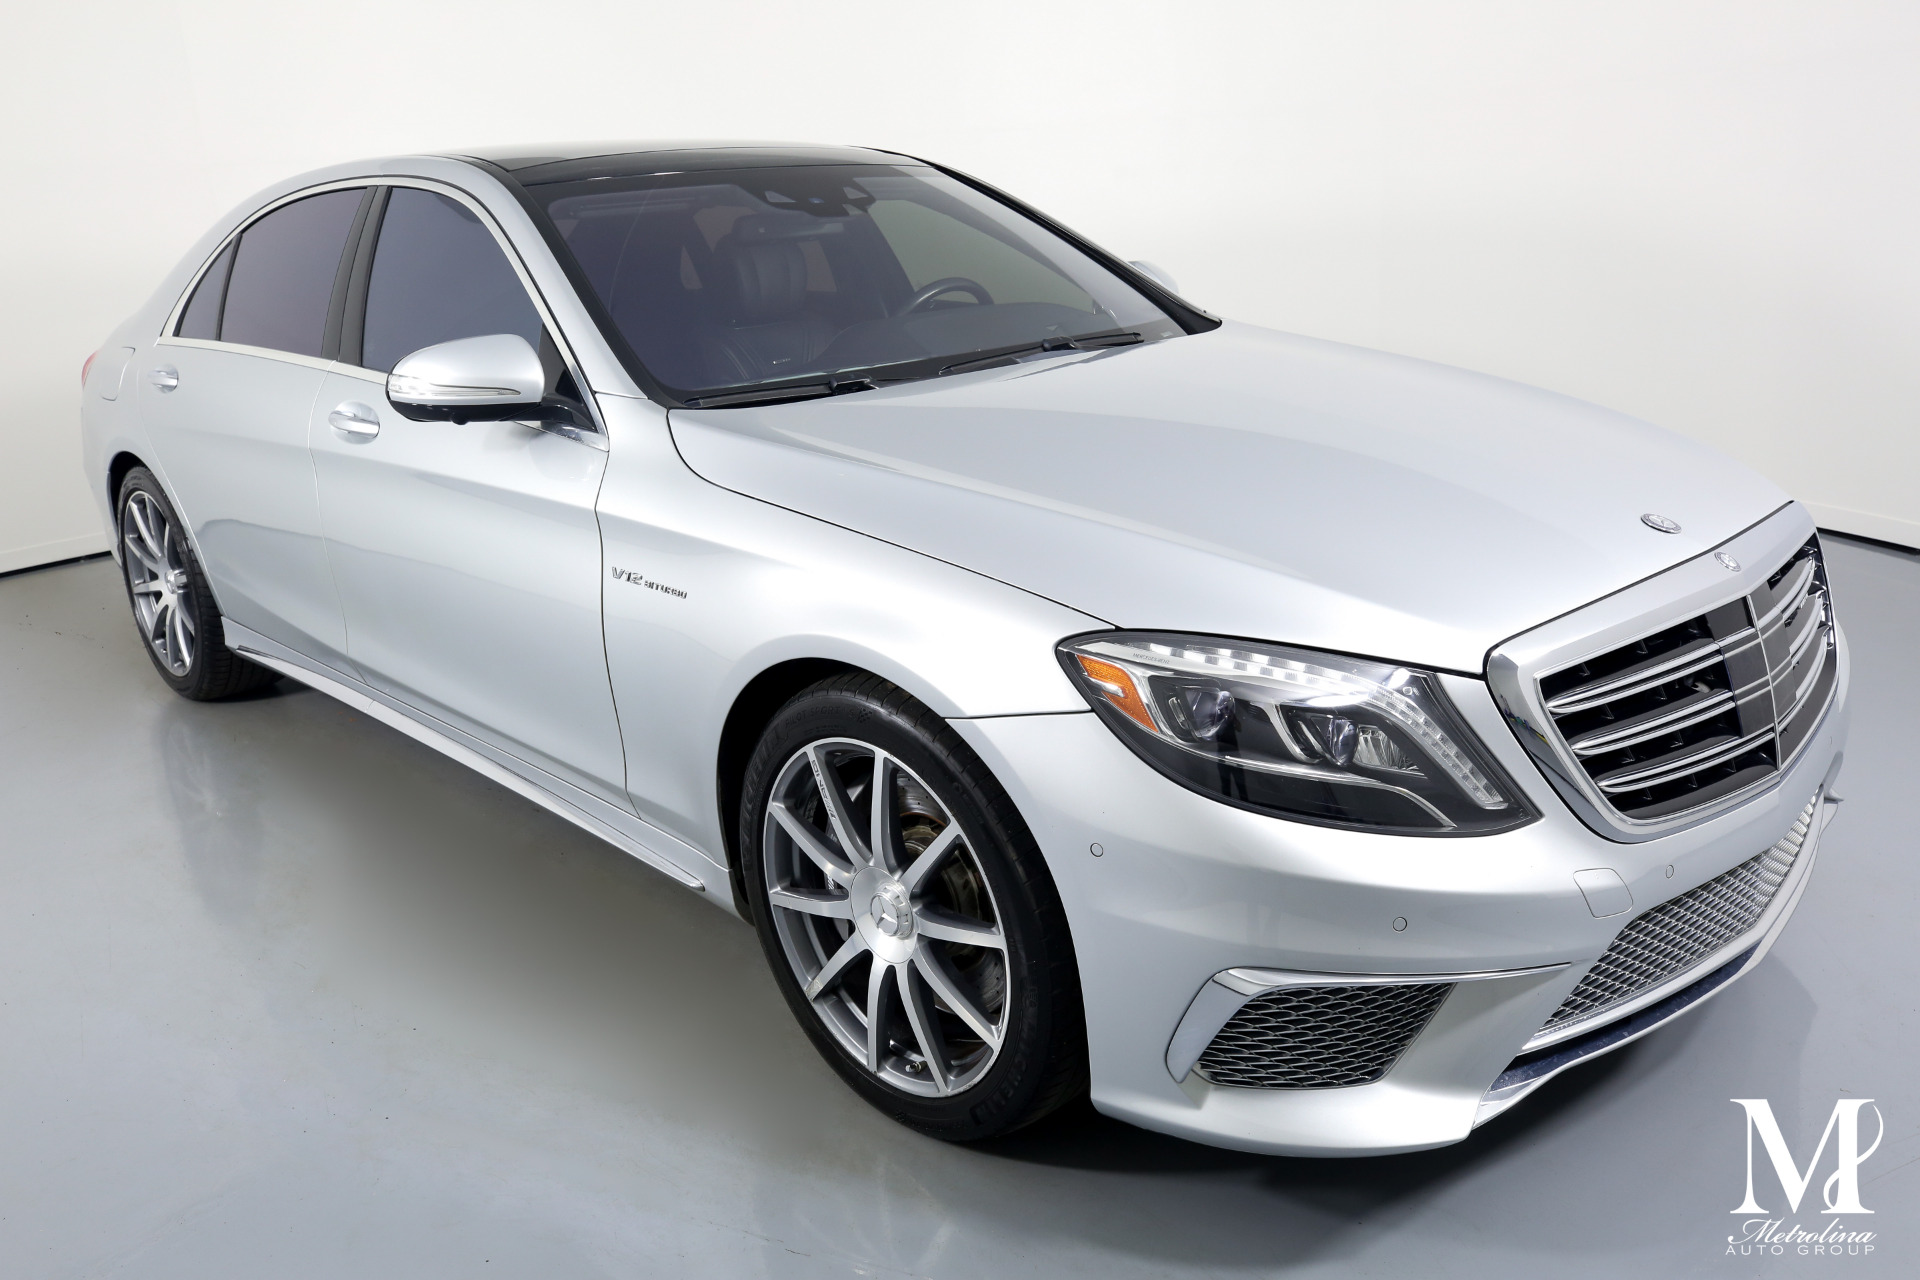 Used 2015 Mercedes-Benz S-Class S 65 AMG for sale $74,996 at Metrolina Auto Group in Charlotte NC 28217 - 2